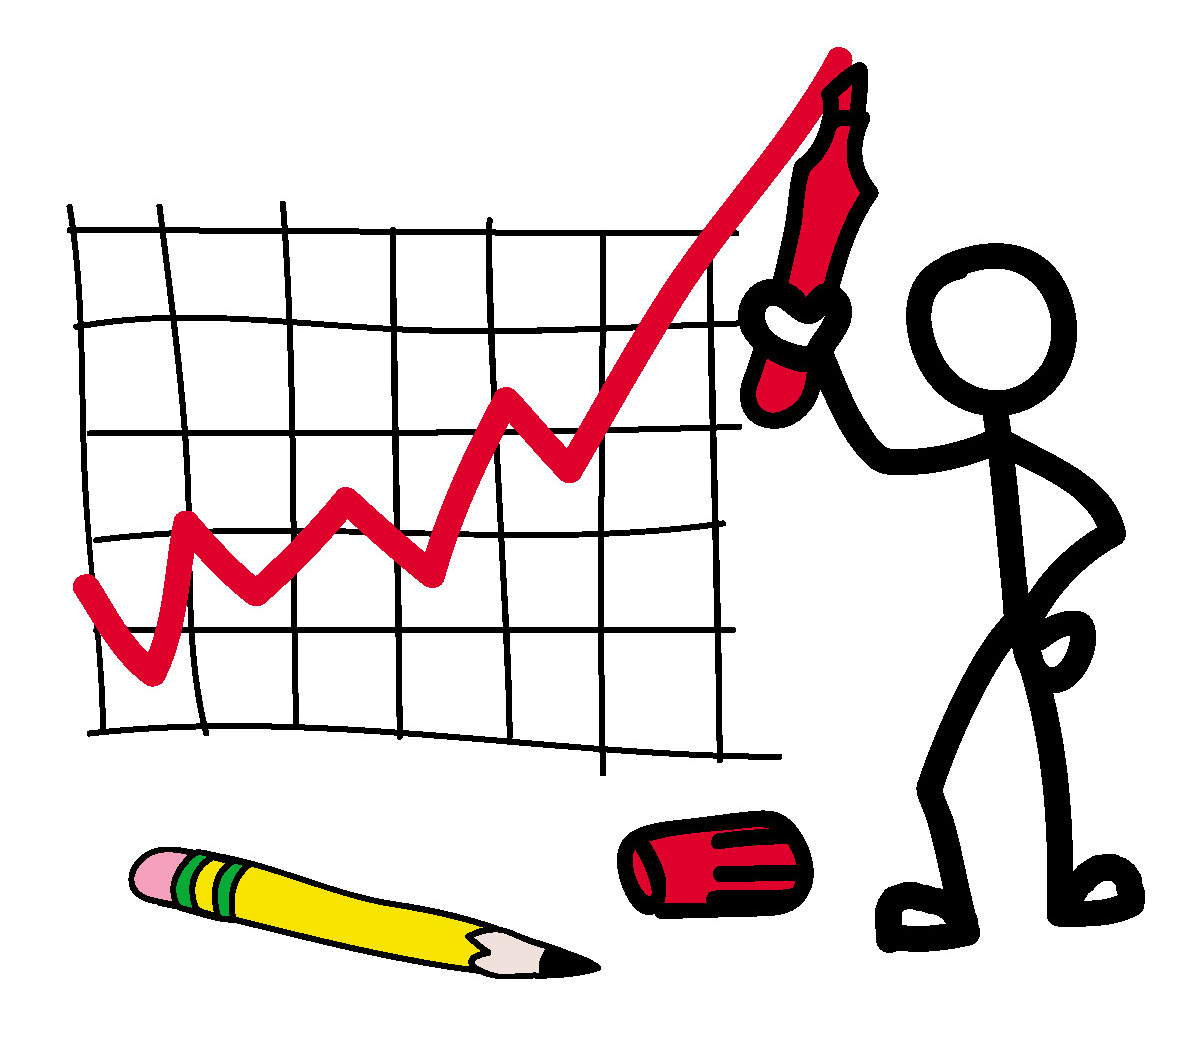 1200x1050 Clip Art Stick Guy Graphing Clipart Panda